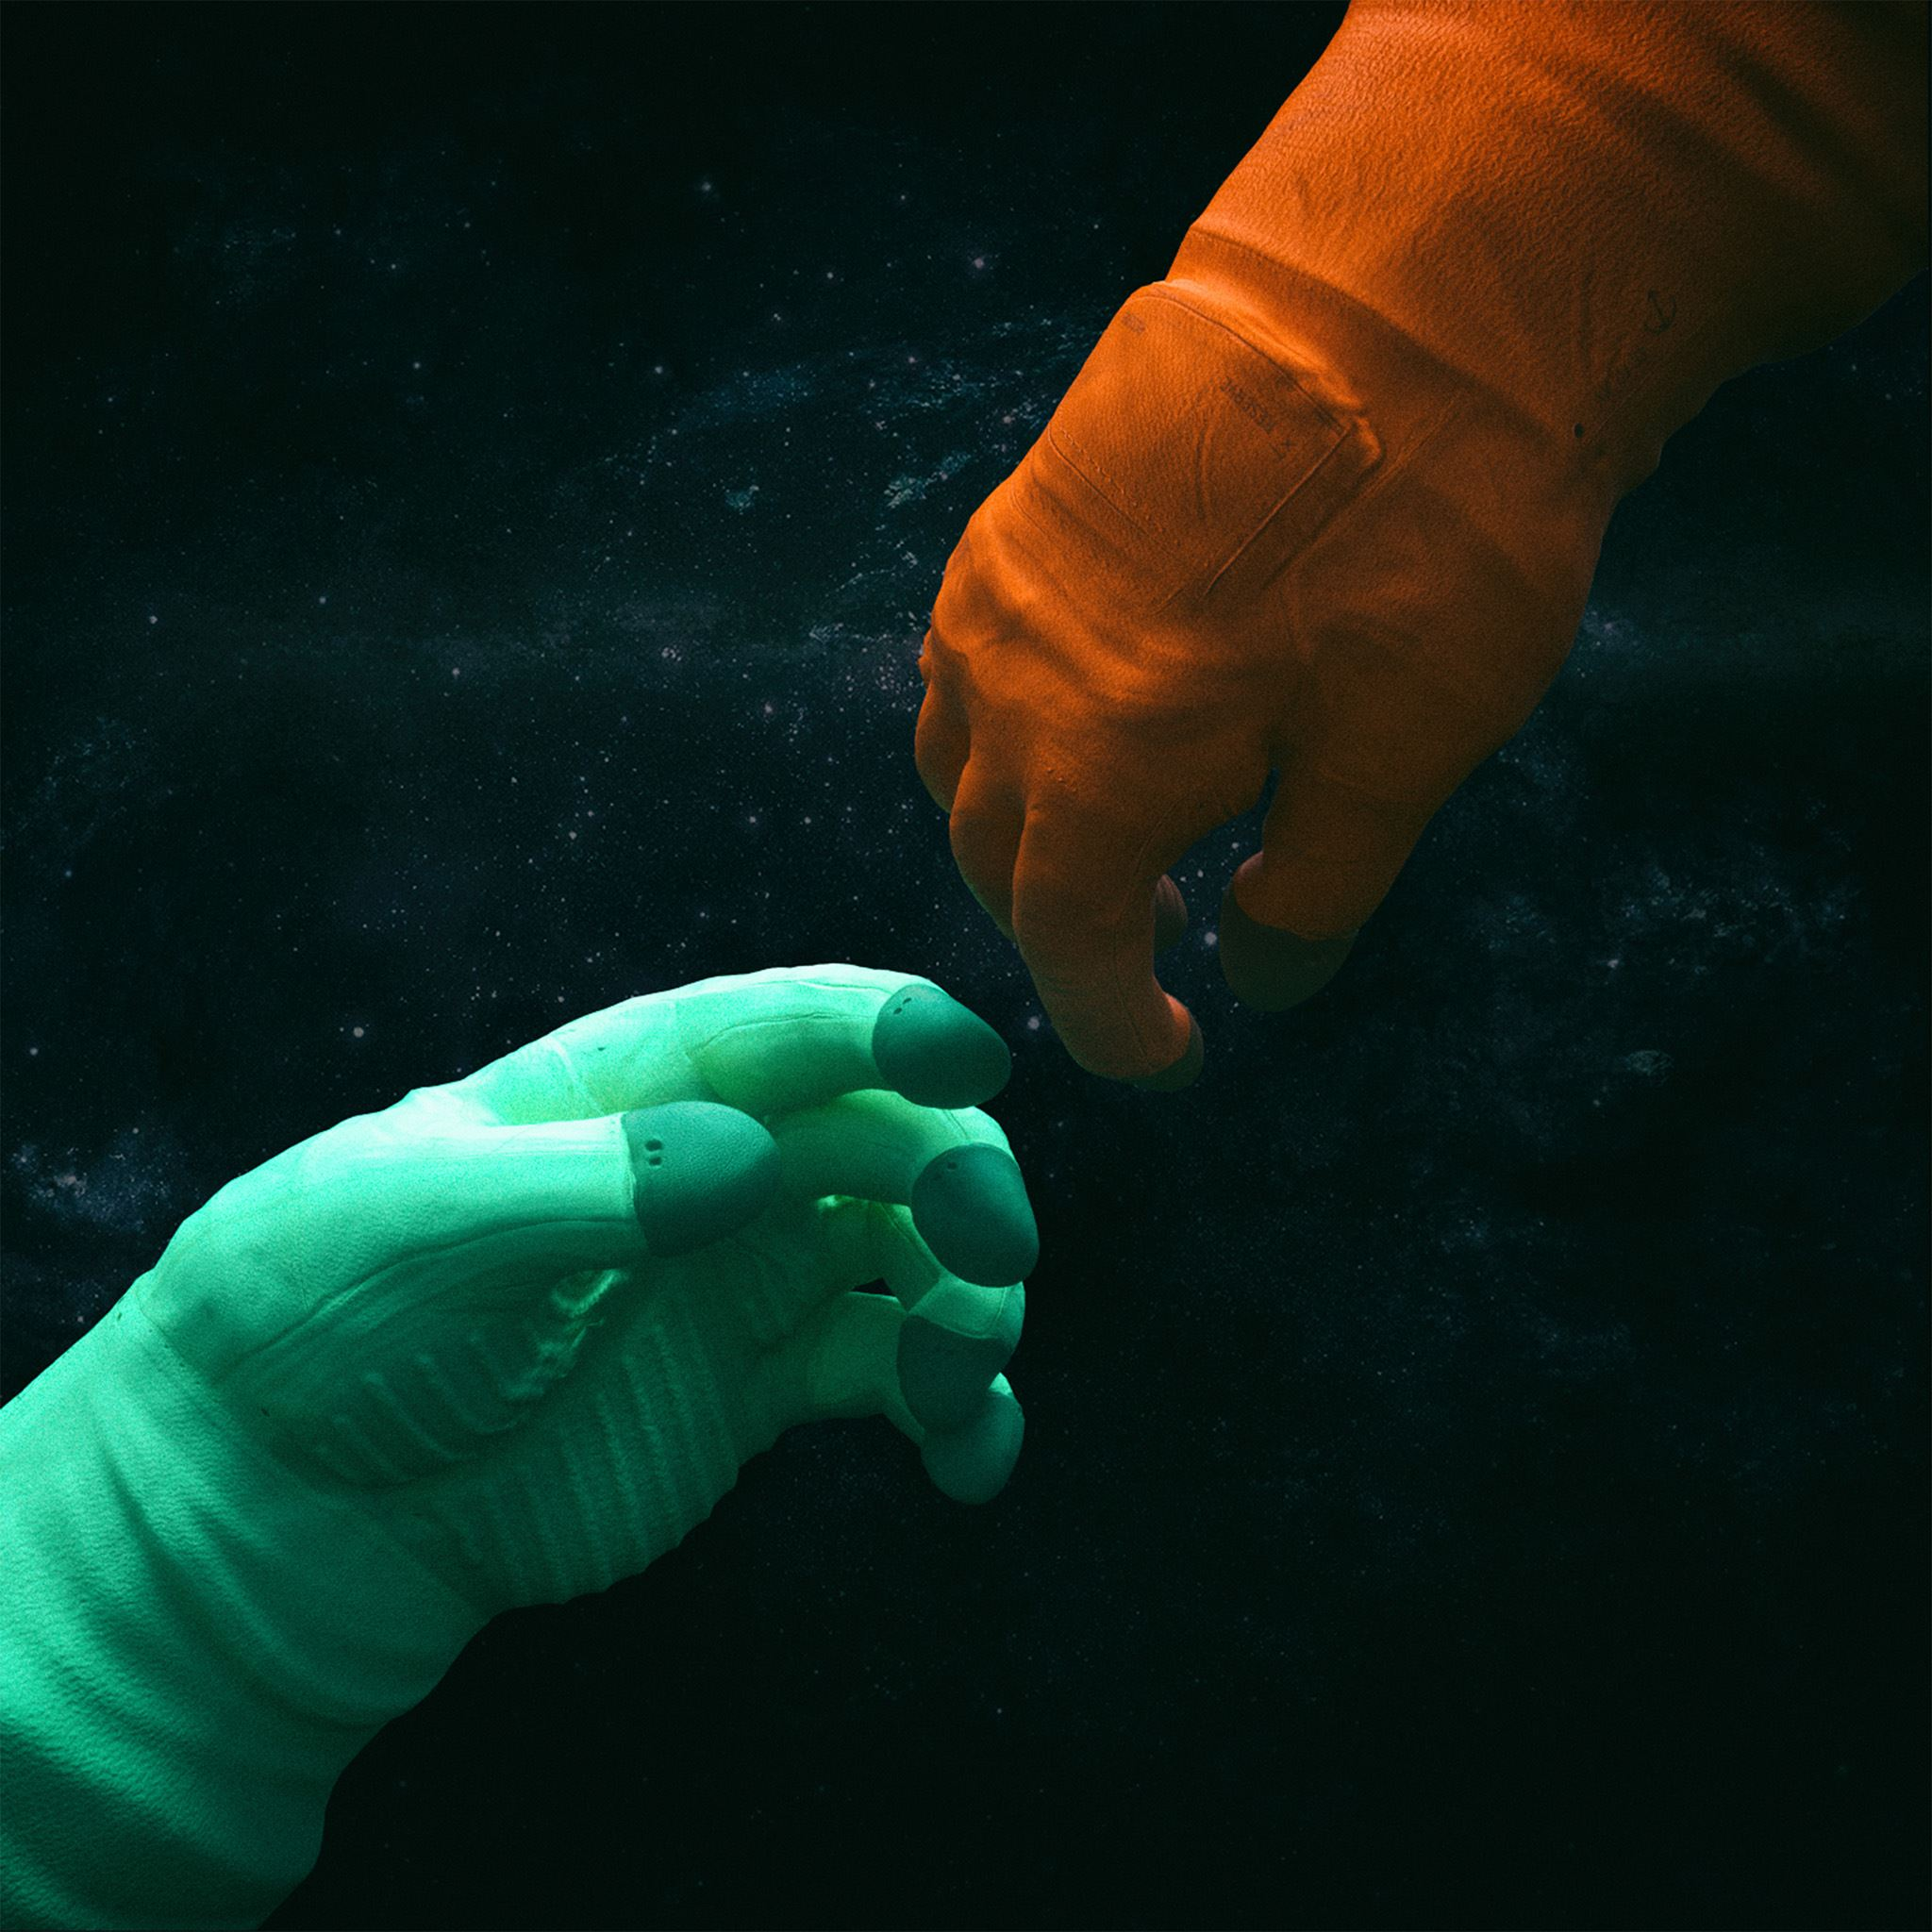 Shake hand space art illustration iPad Air wallpaper